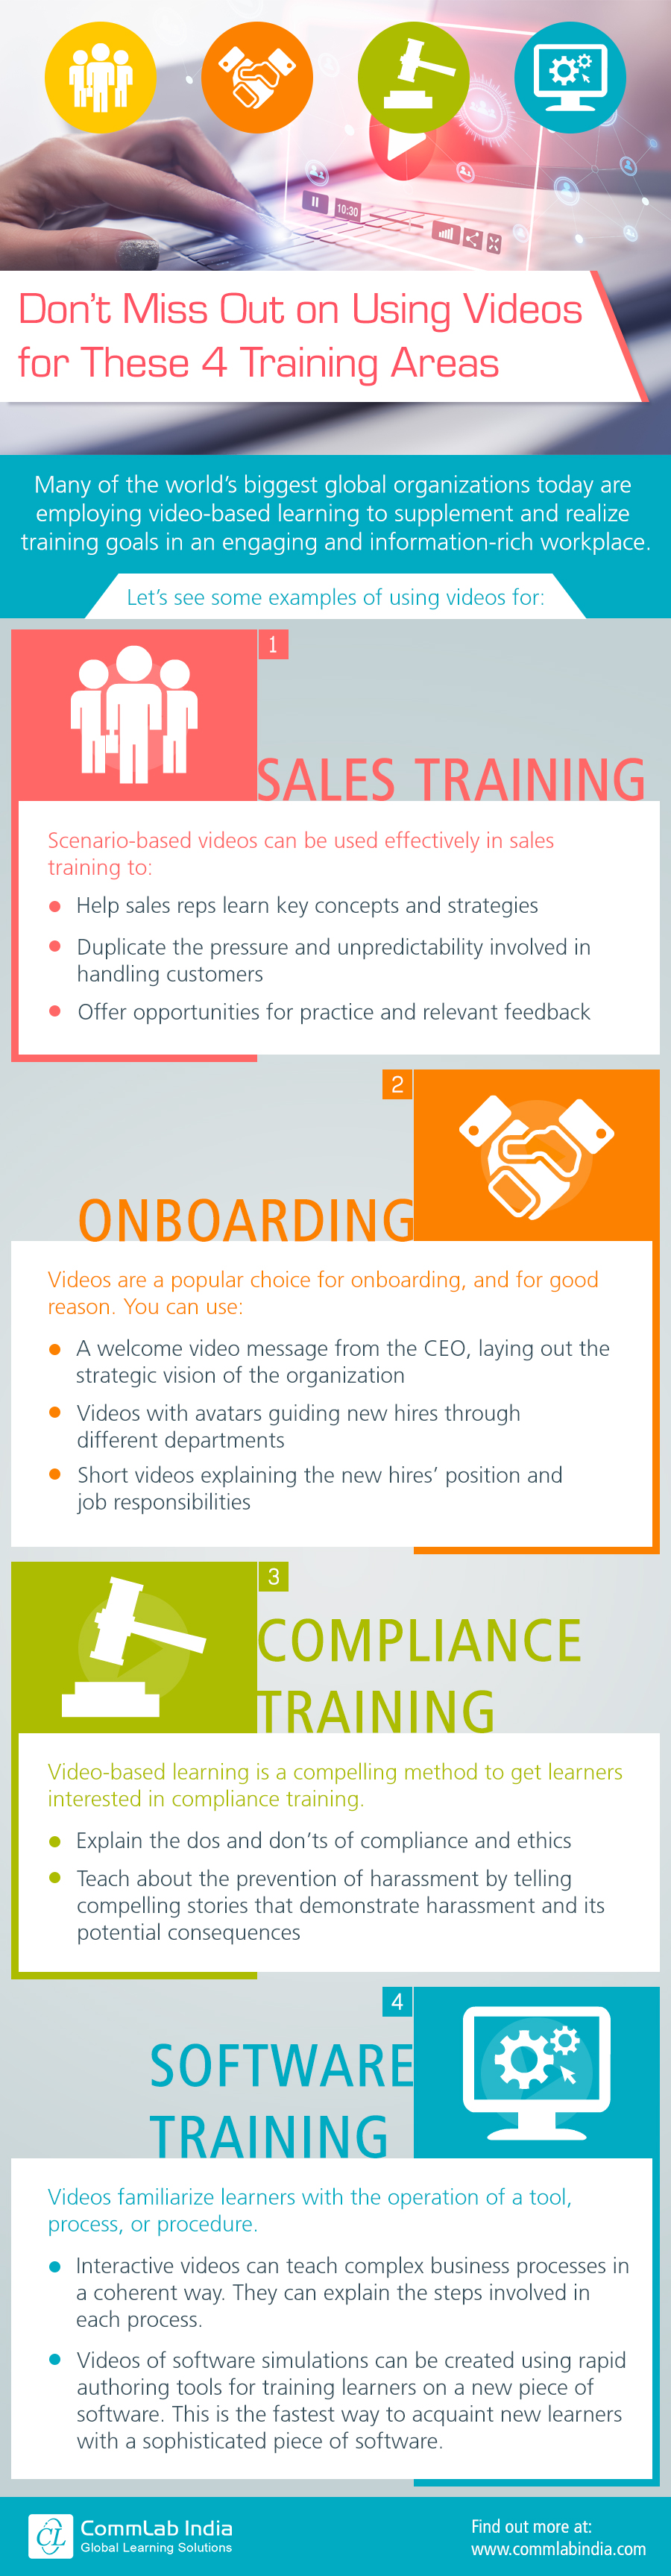 Don't Miss Out on Using Videos for These Four Training Areas [Infographic]